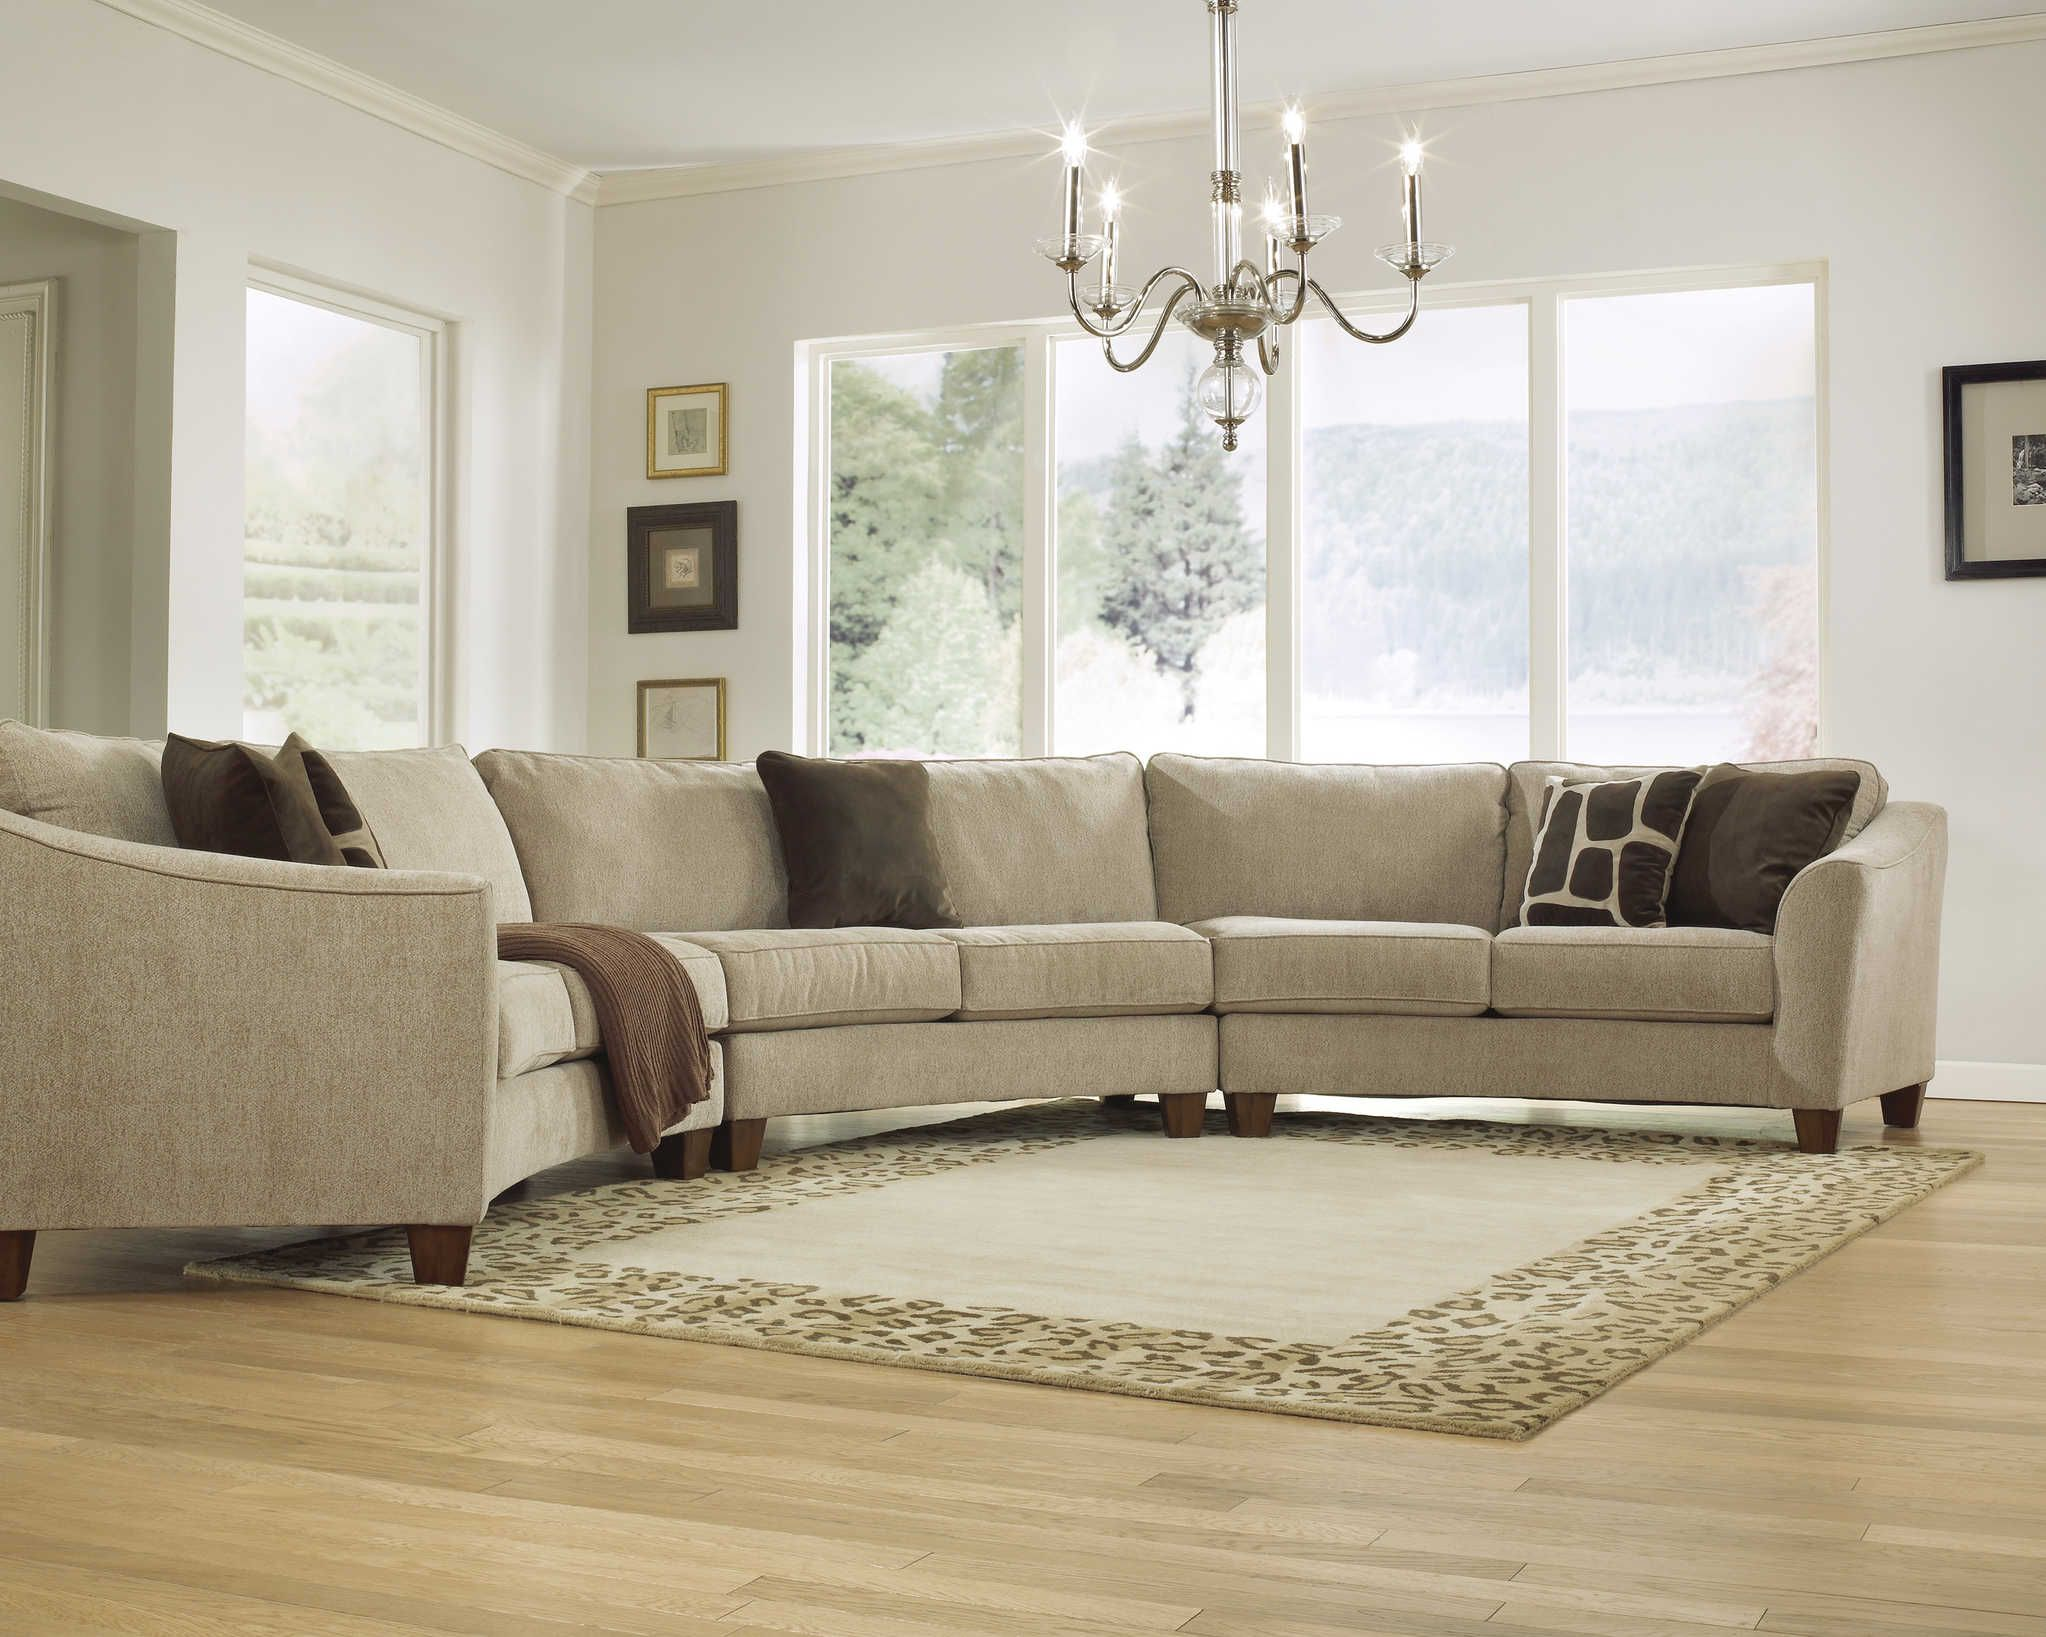 Living Room Designs With Sectionals Pleasing 2959Curvaceous Beauty  Curved Sectional Sofa Set In Classic Review